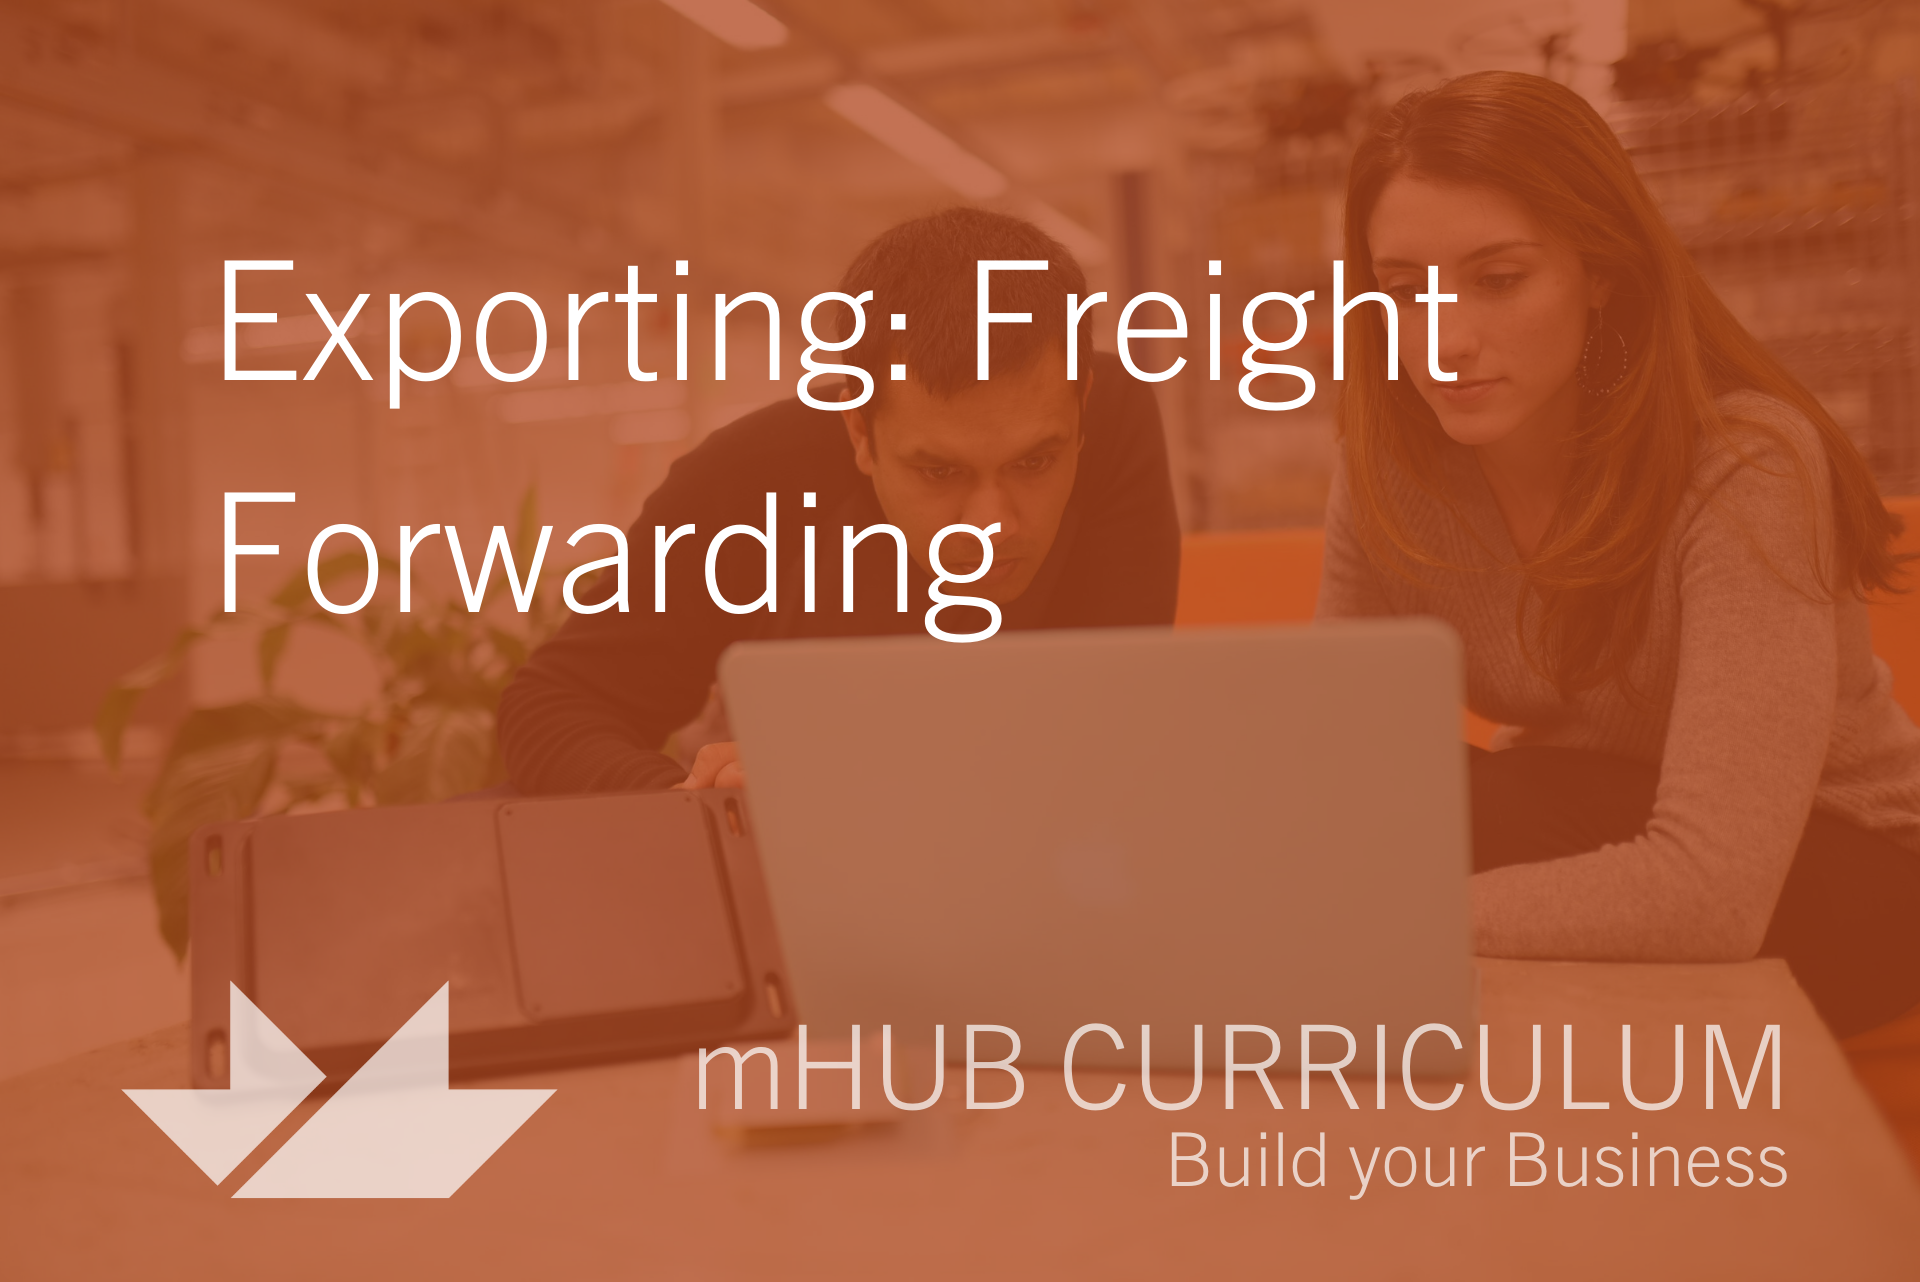 Exporting: Freight Forwarding